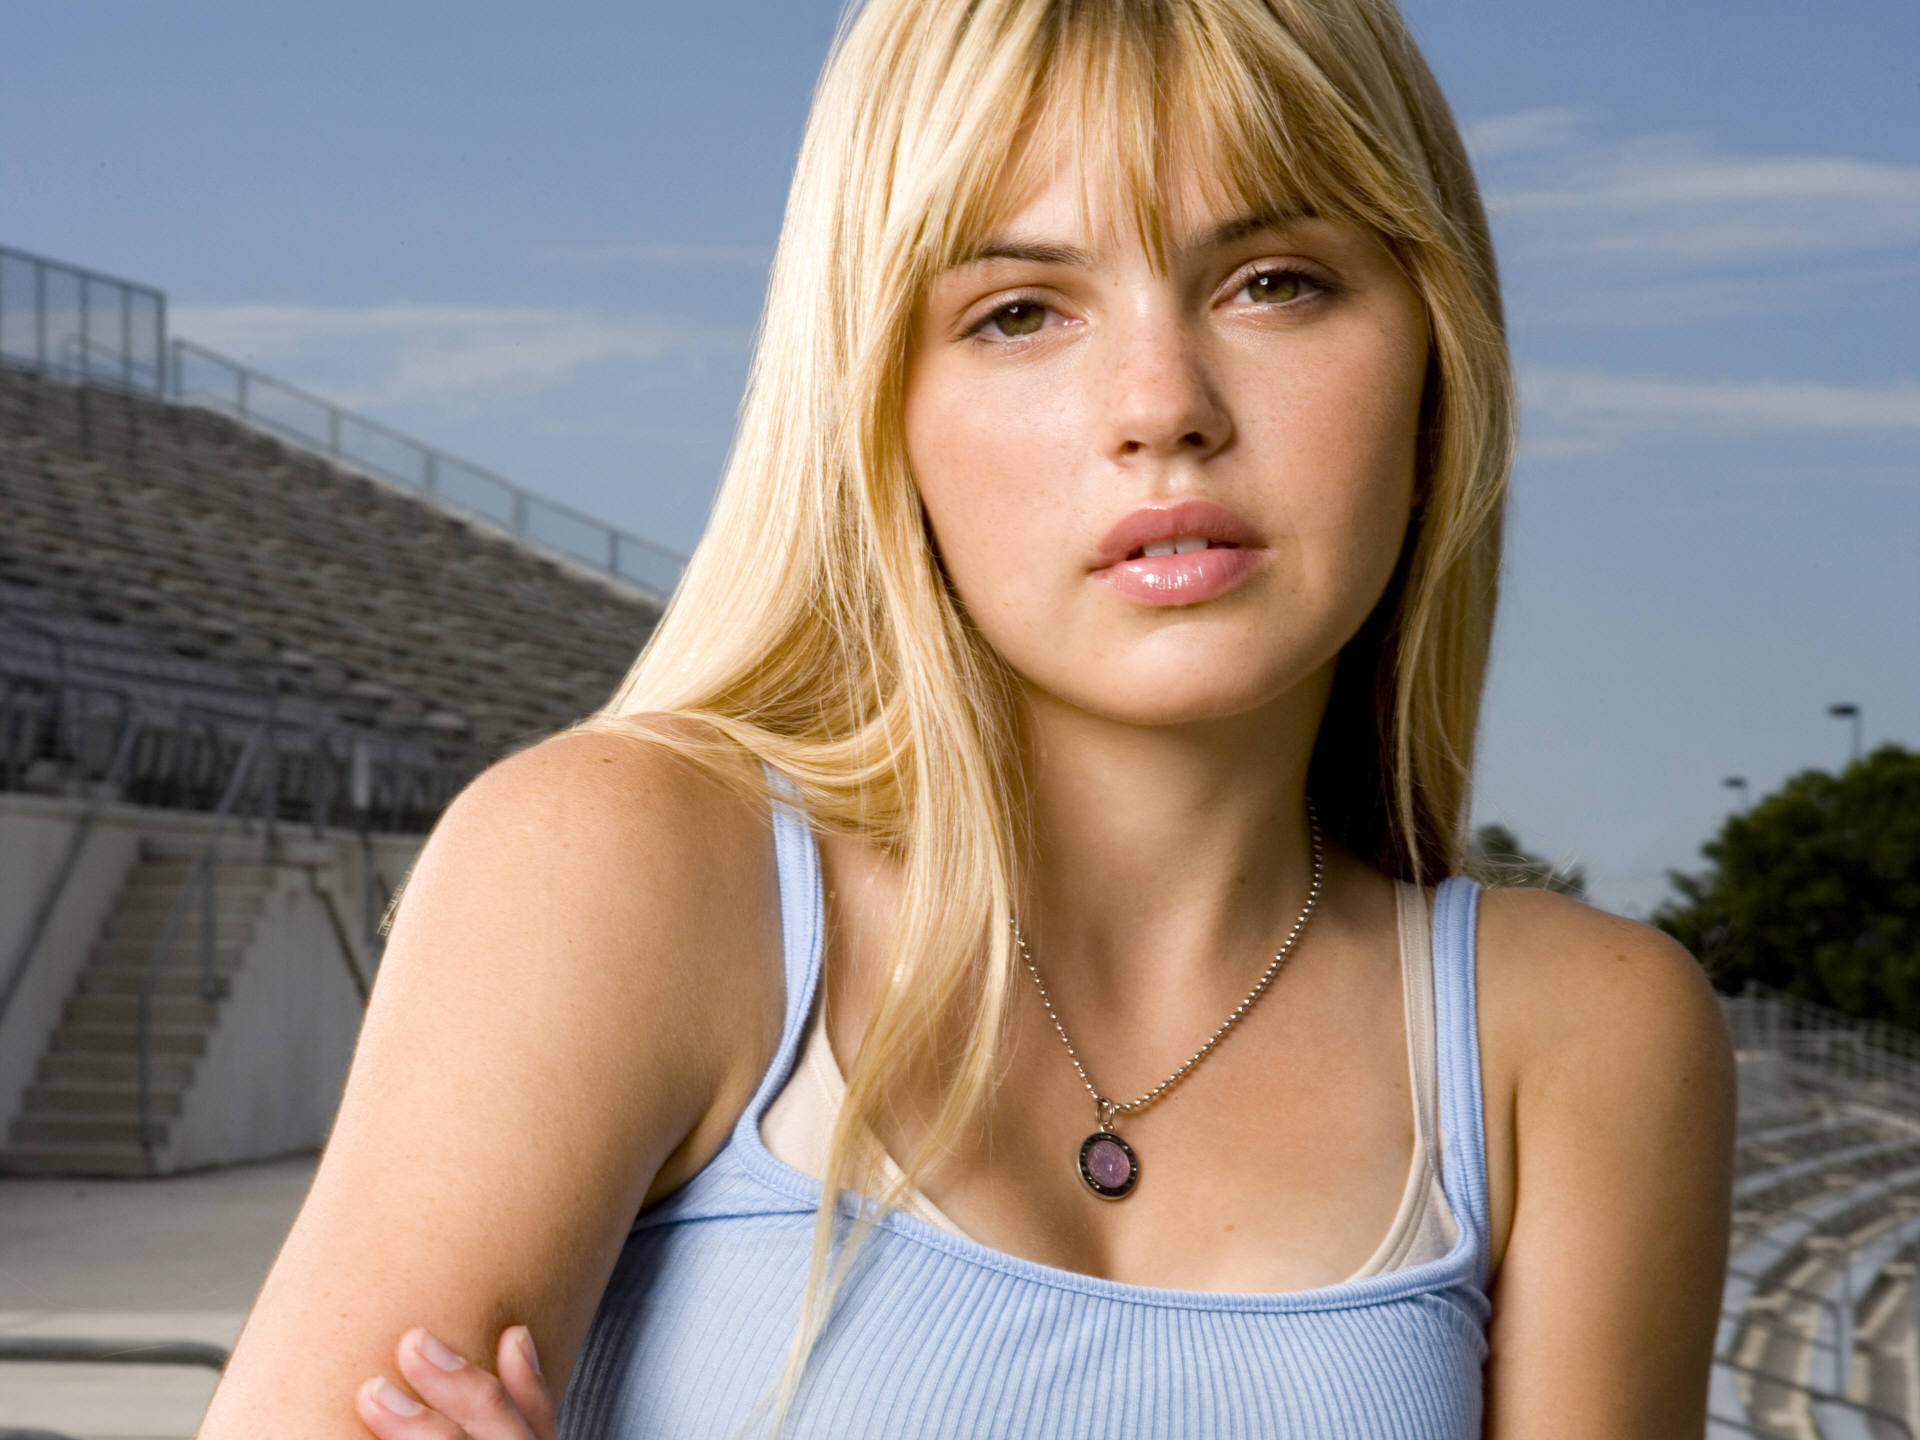 picture aimee teegarden - photo #27